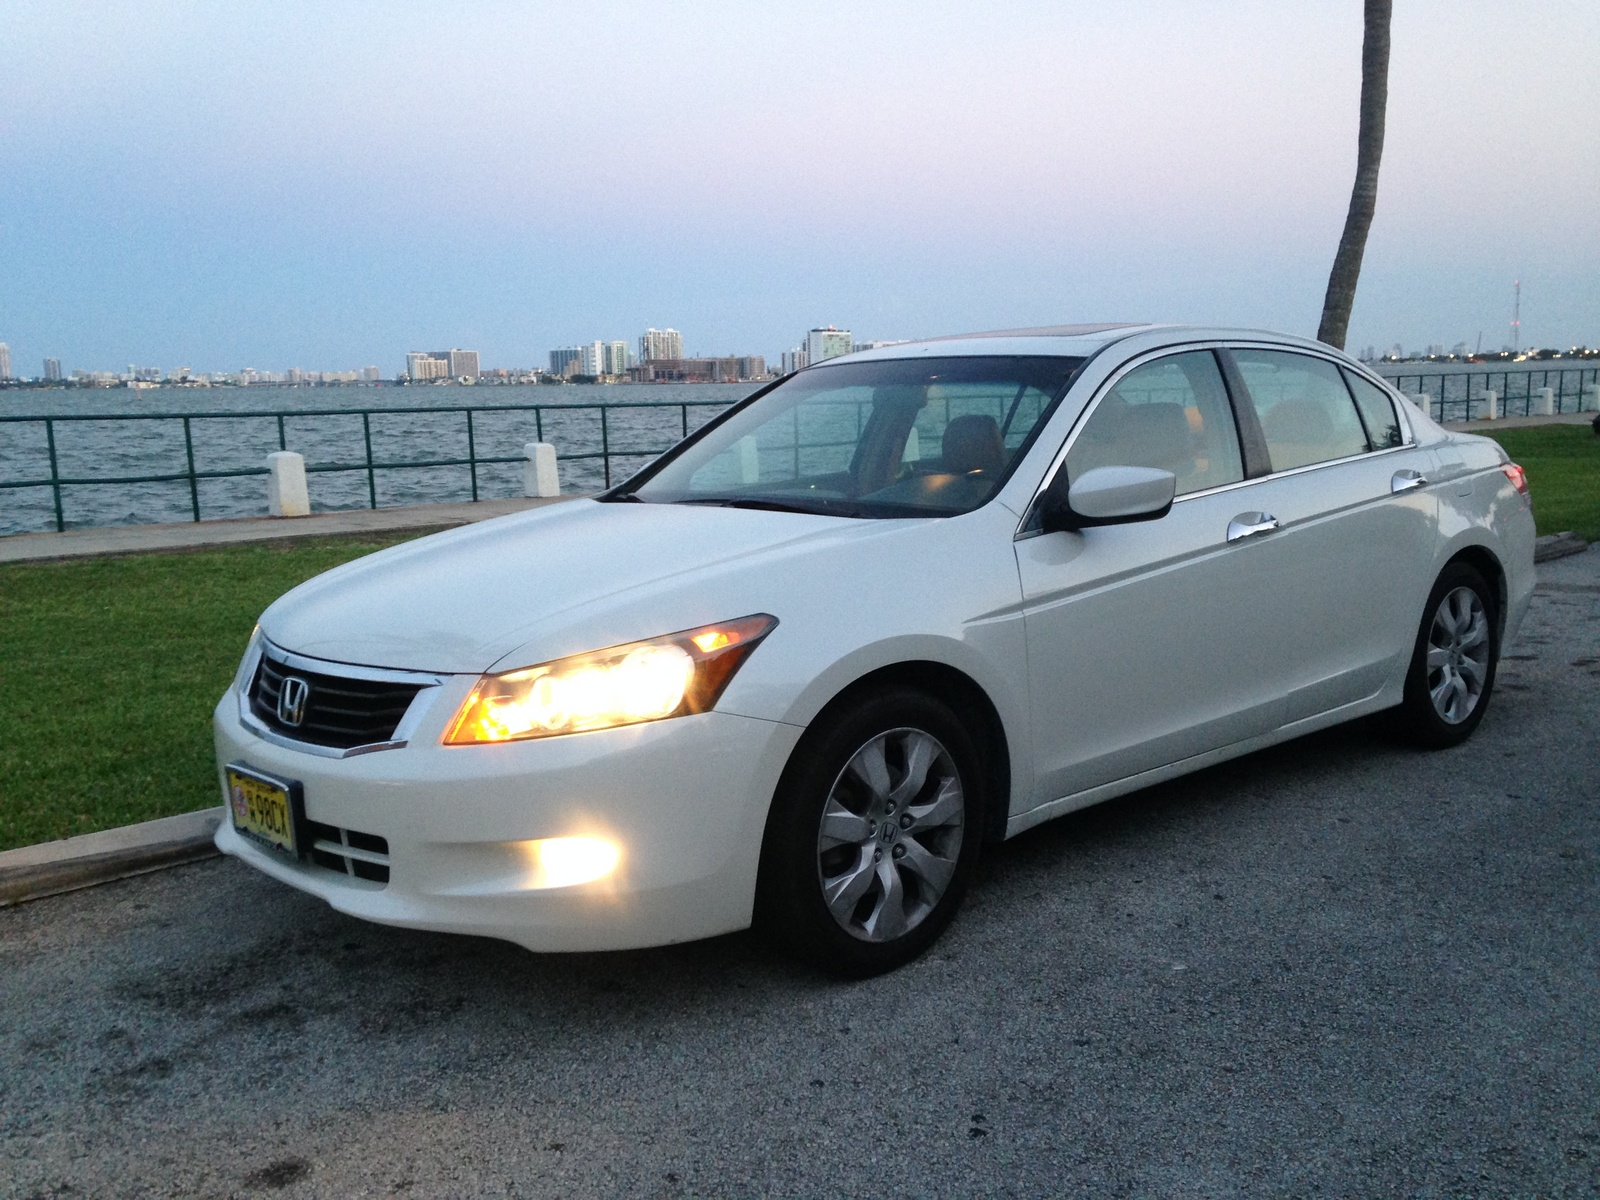 2008 honda accord reviews specs and prices autos post for 200 honda accord